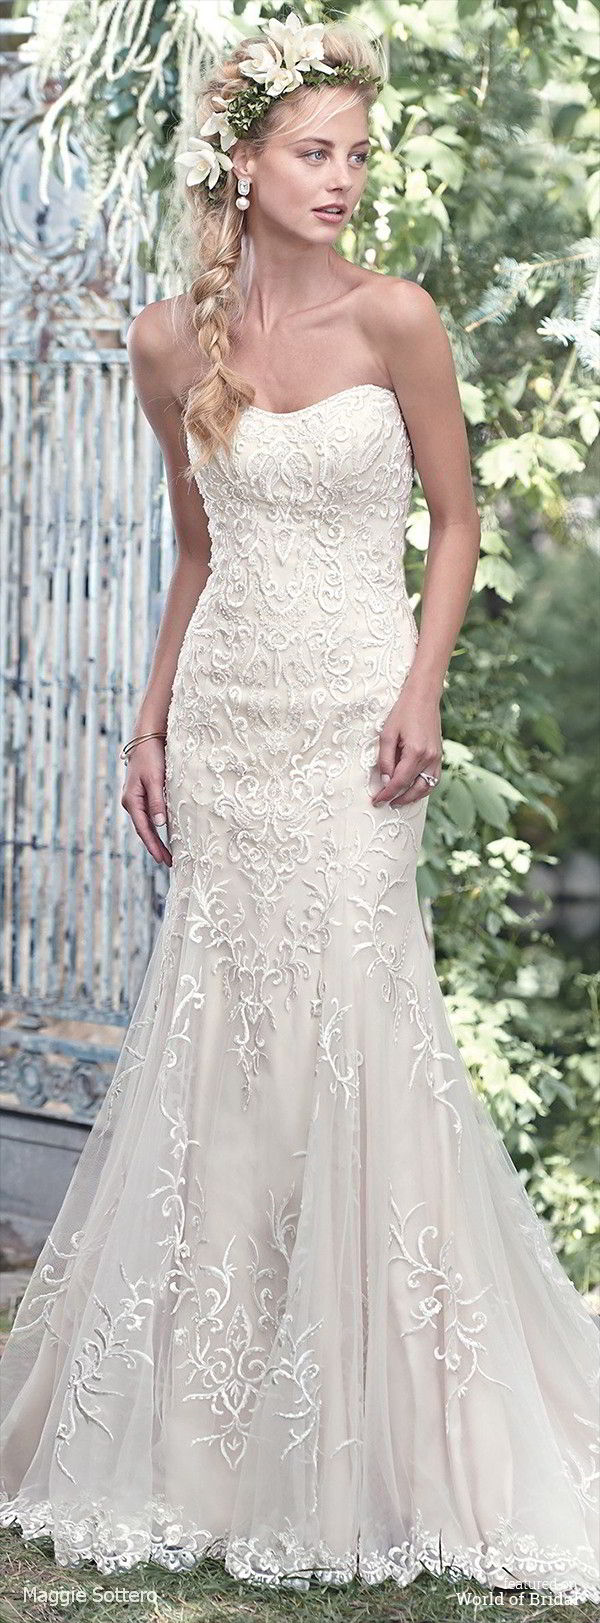 Maggie Sottero Spring 2016 Classic Lace Sheath Wedding Dress